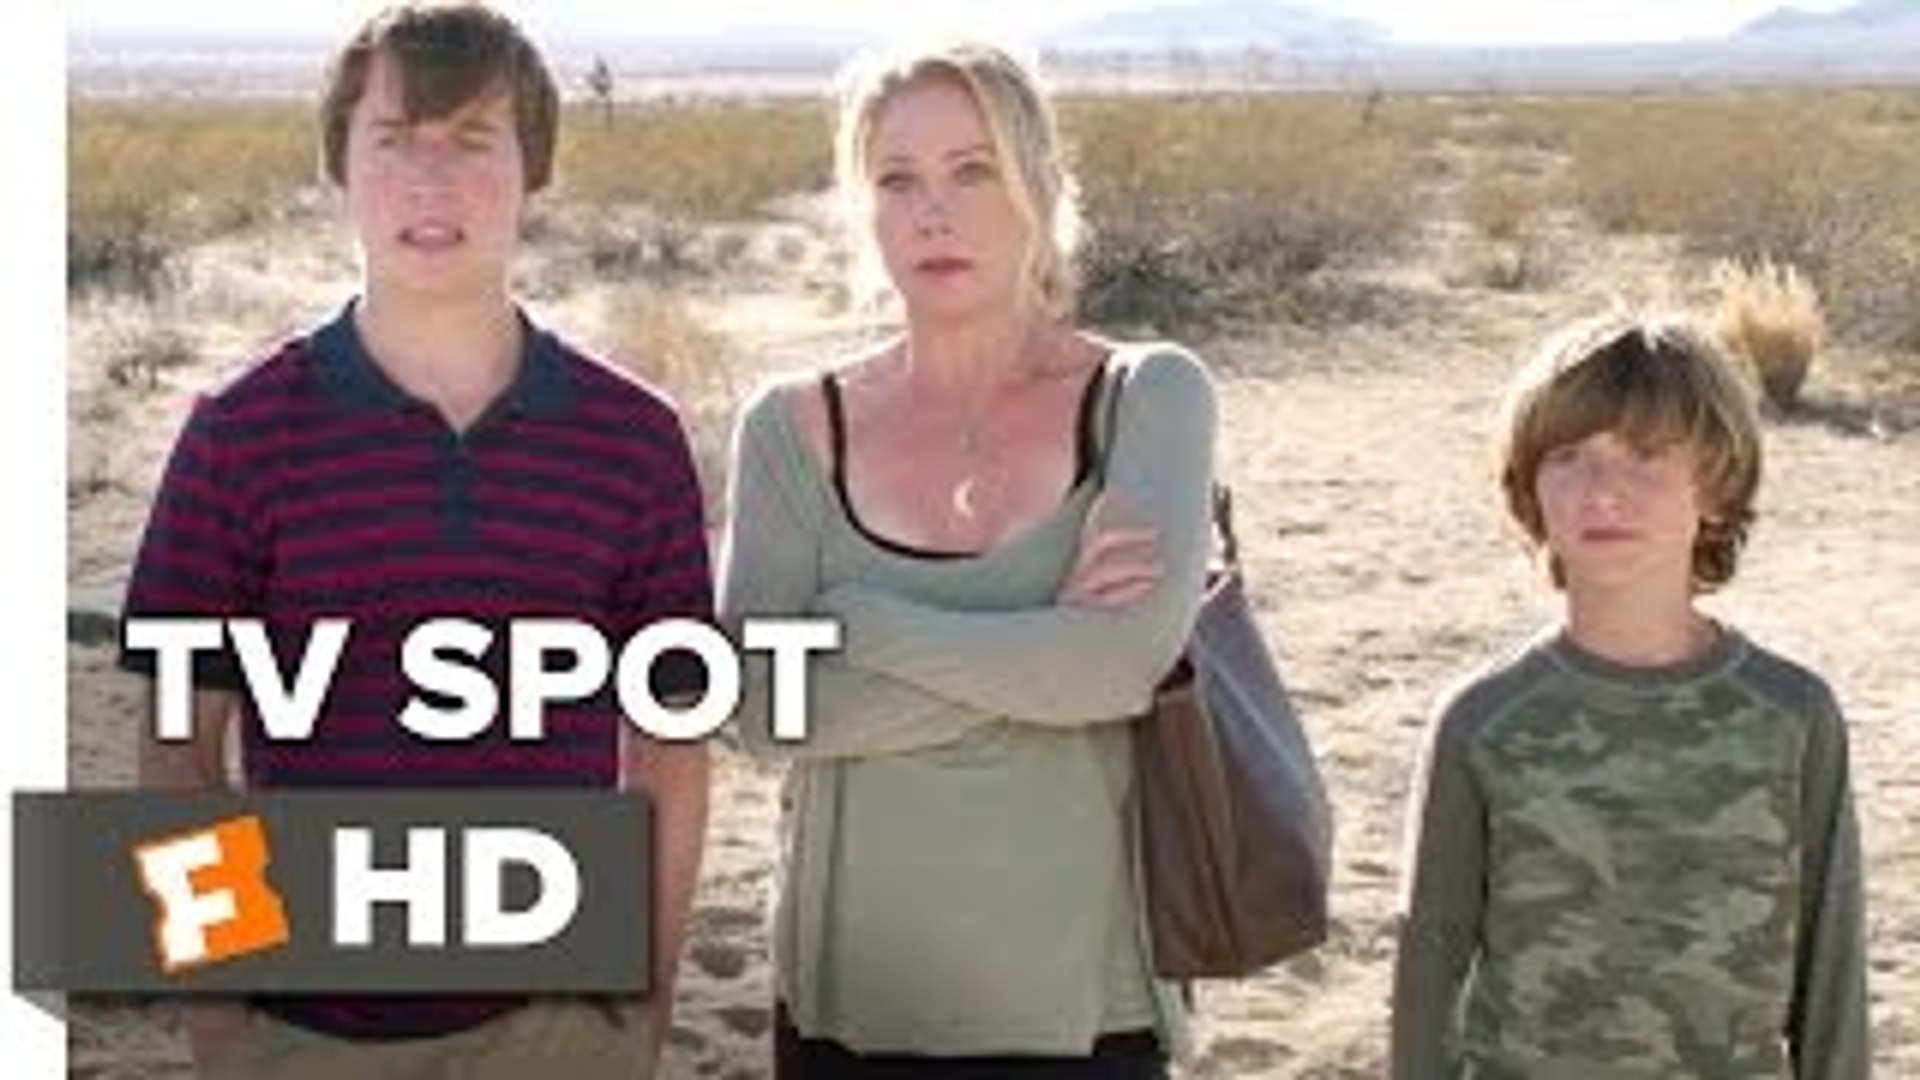 Vacation TV SPOT - Now Playing (2015) - Ed Helms, Leslie Mann Comedy HD